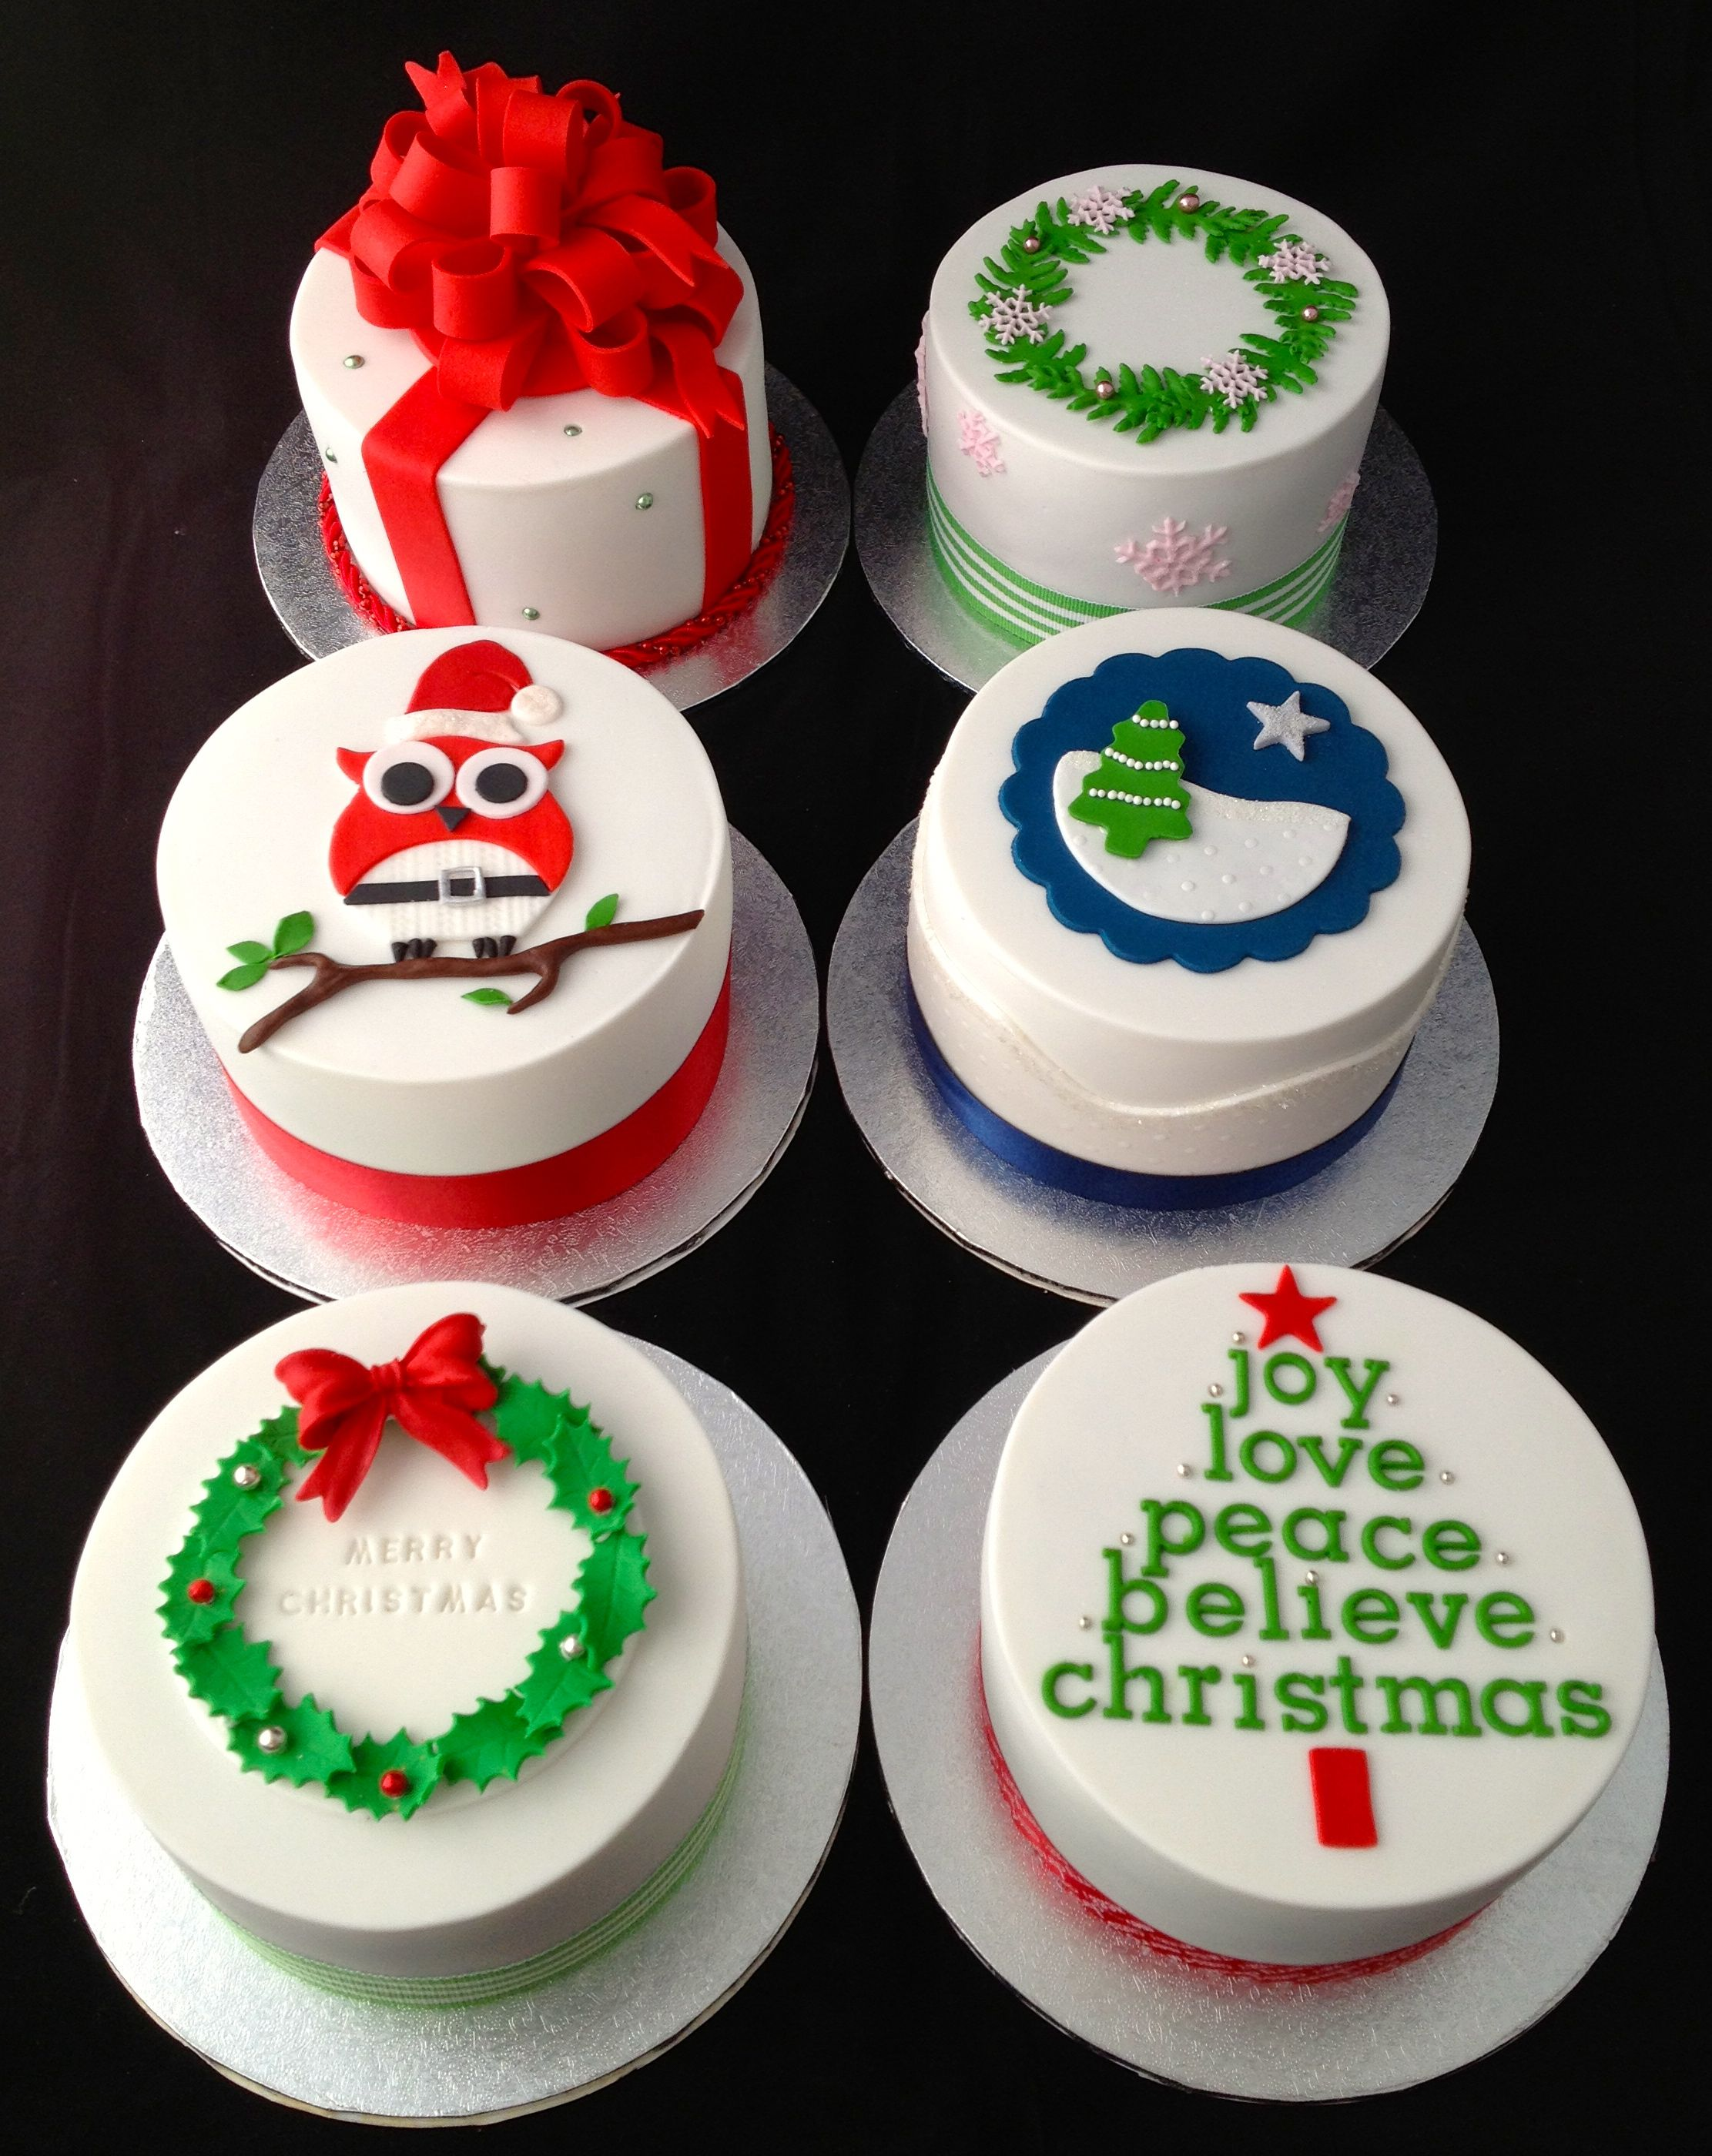 Mini Christmas Cakes Trying out cake designs for this year 4